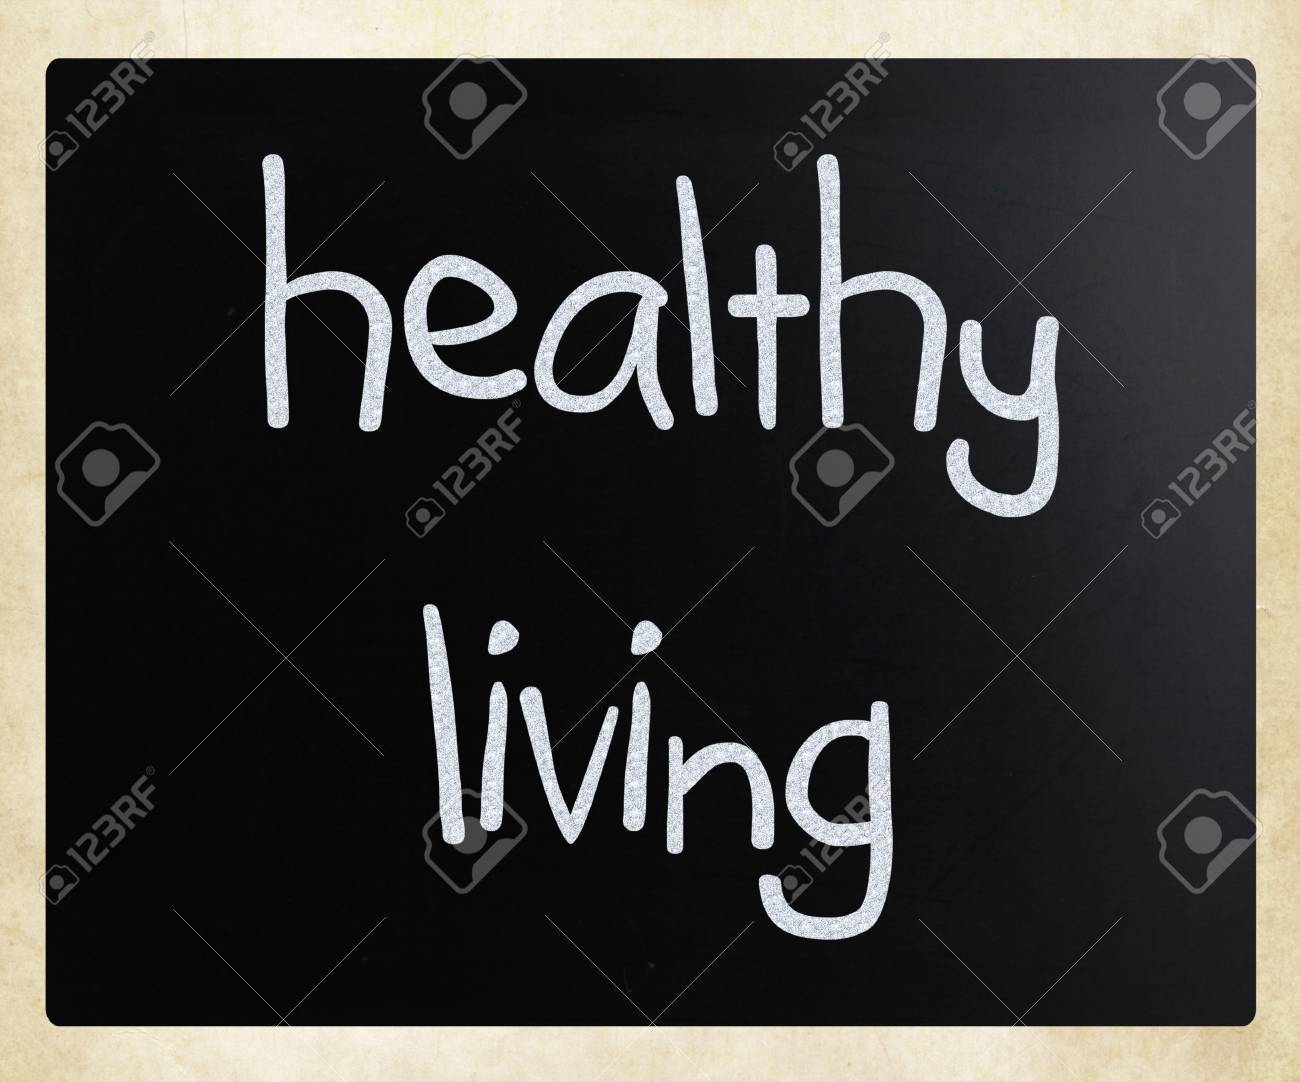 Healthy living, handwritten with white chalk on a blackboard. Stock Photo - 14351599